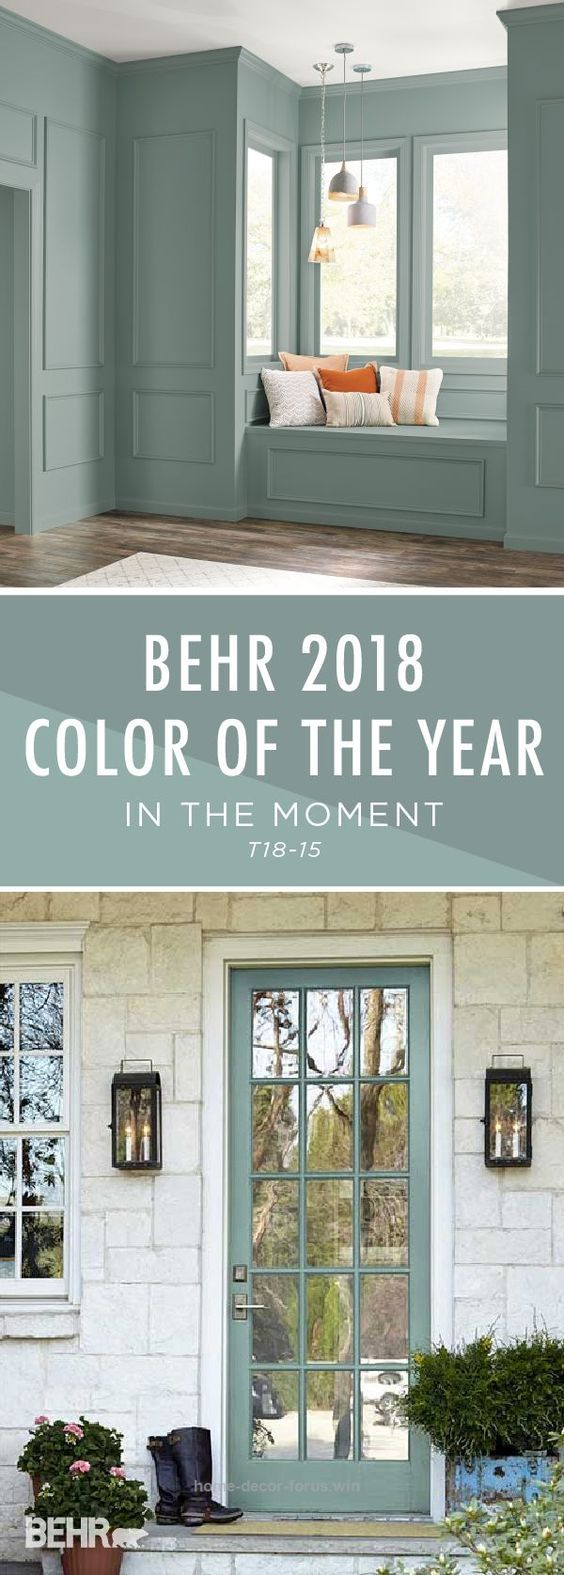 Outstanding Introducing the BEHR 2018 Color of the Year: In The Moment. With undertones of blue, gray, and green, this calming paint color helps to create a relaxing space in your home, promoting mi ..